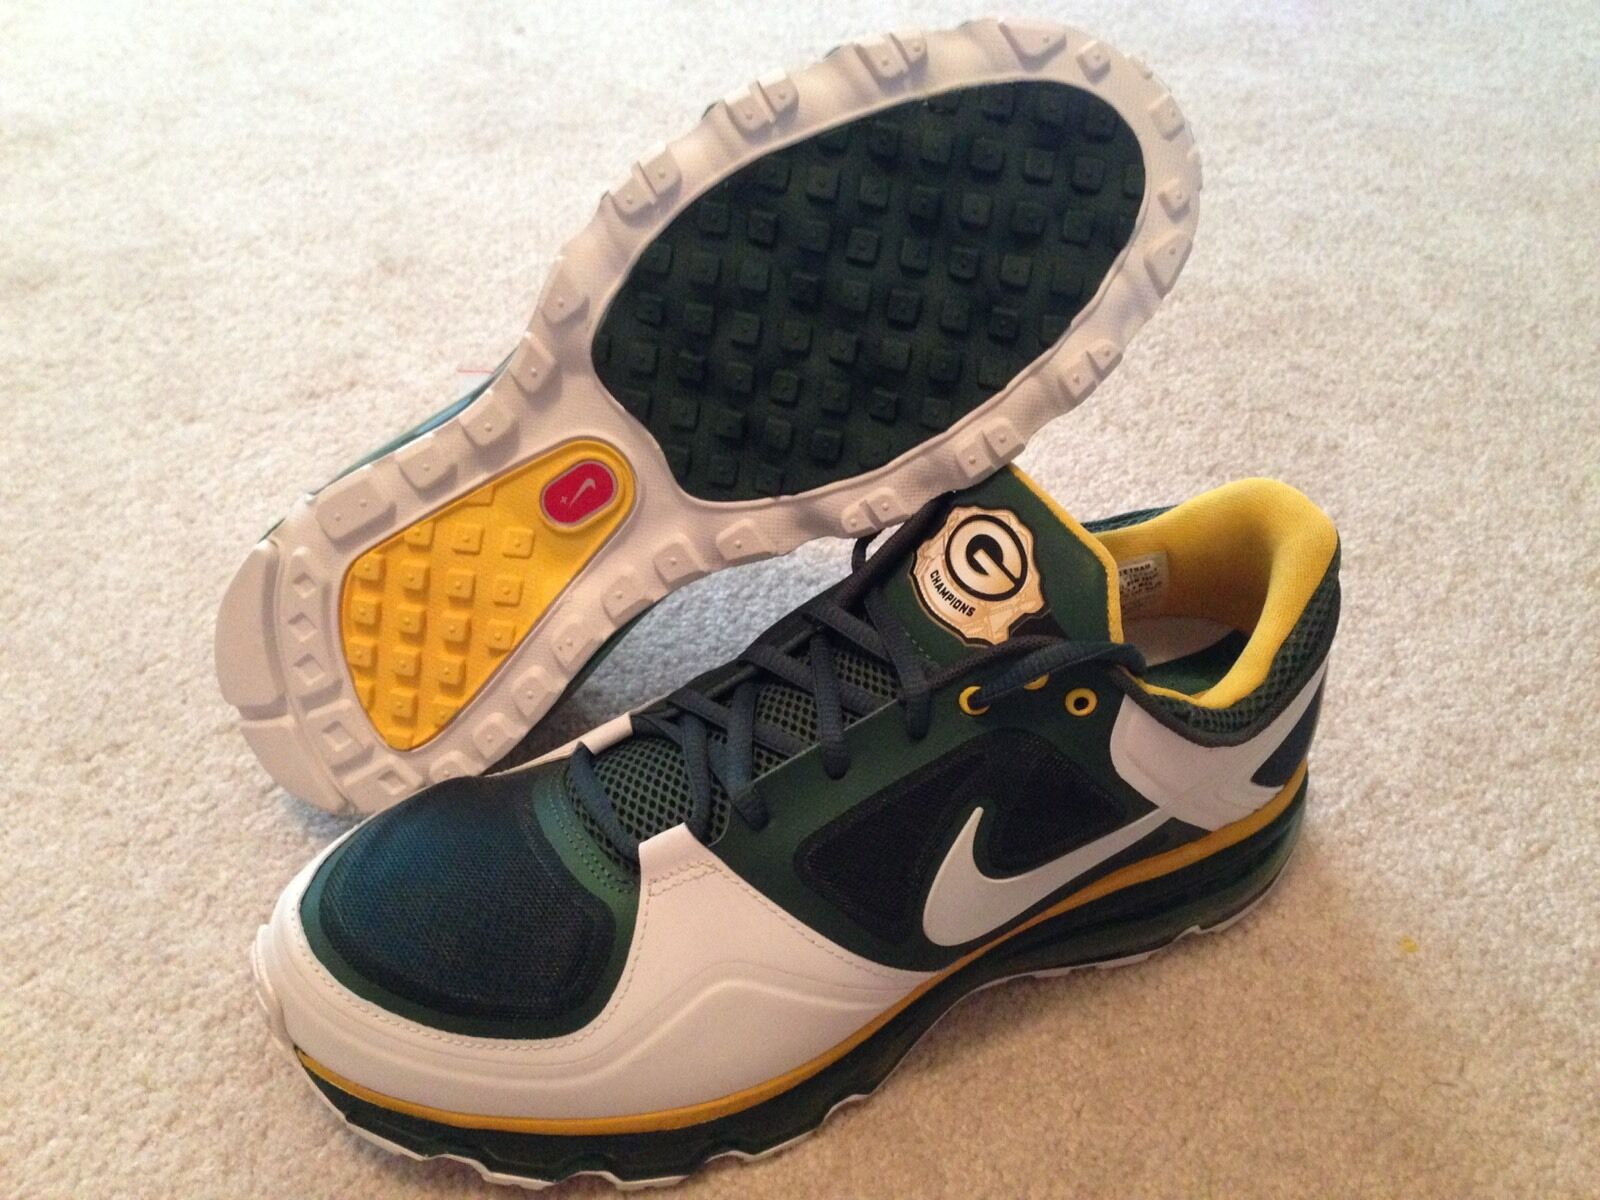 Nike Air Max Green Bay Packers Championship PE Sz 11 Rare Promo Sample